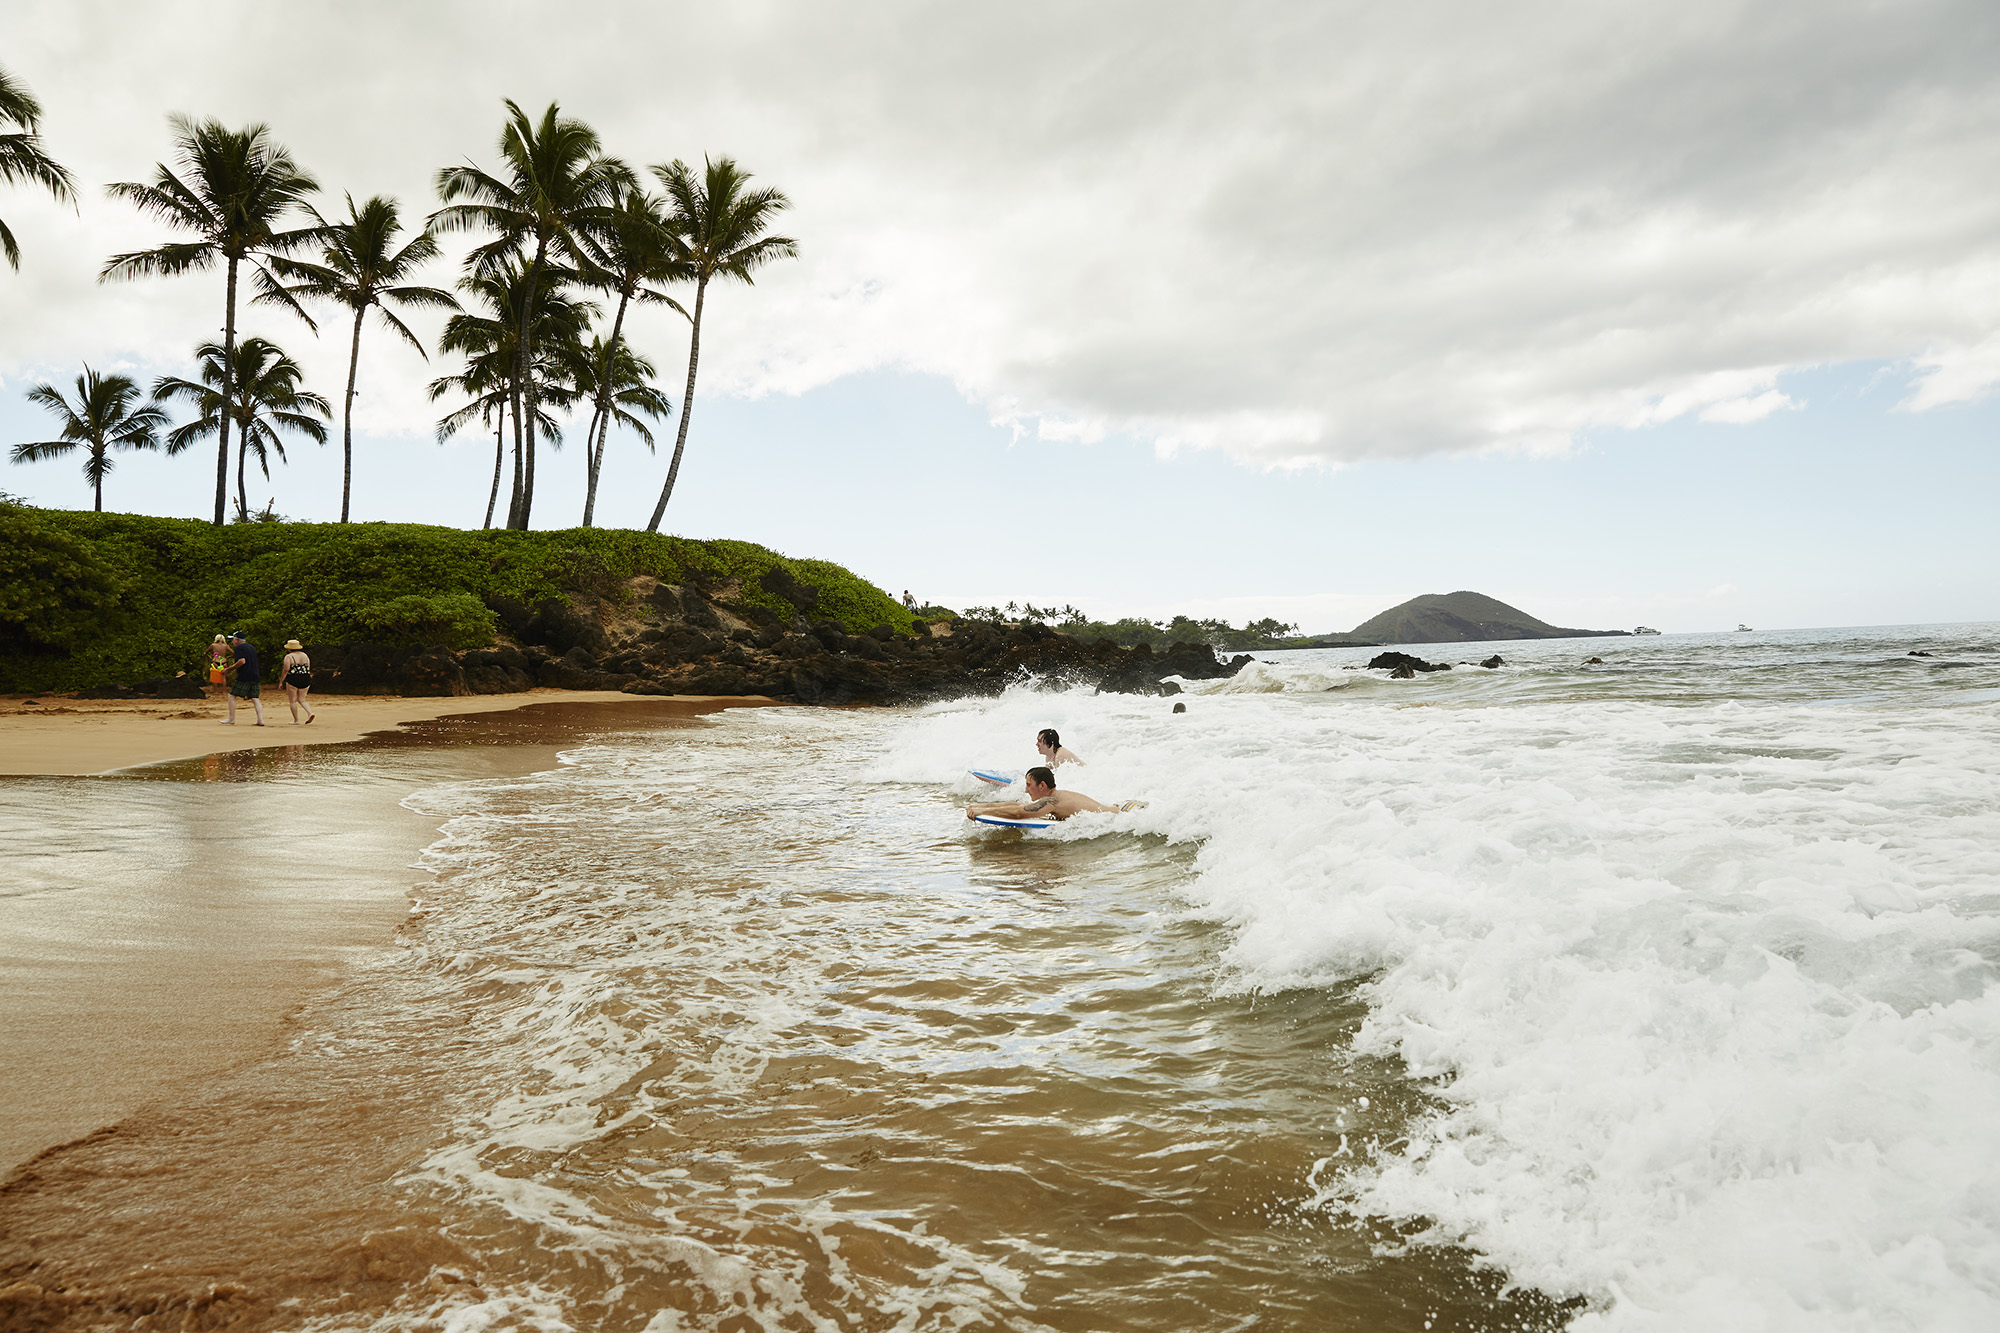 Hawaii-VR_Hawaii_day03_Elliott_151105_0612_Blog